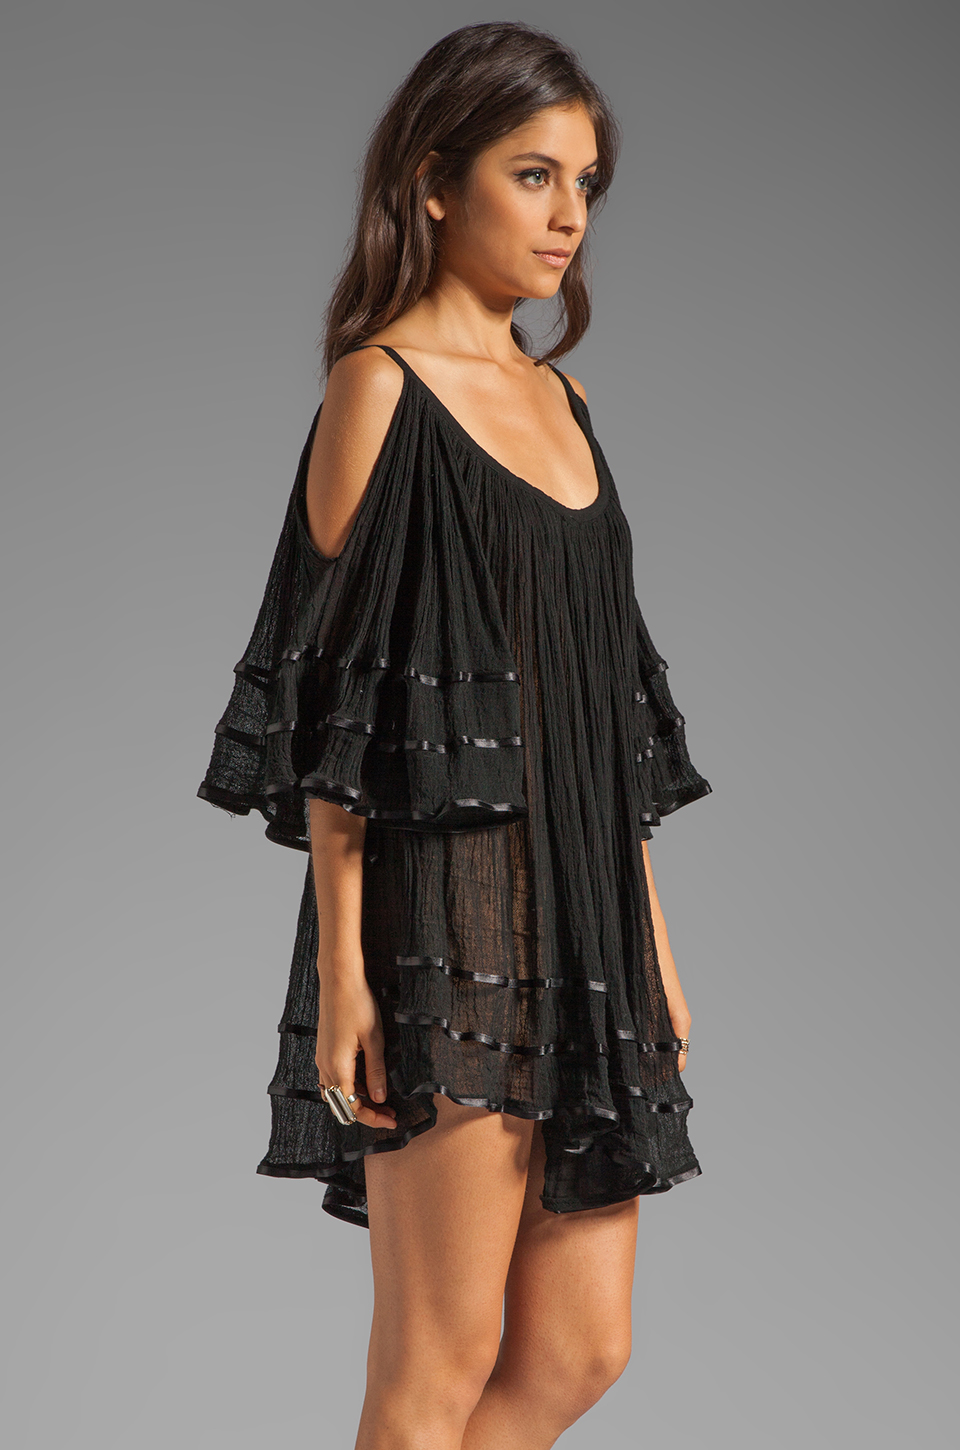 Jen's Pirate Booty Nena Open Shoulder Dress in Black